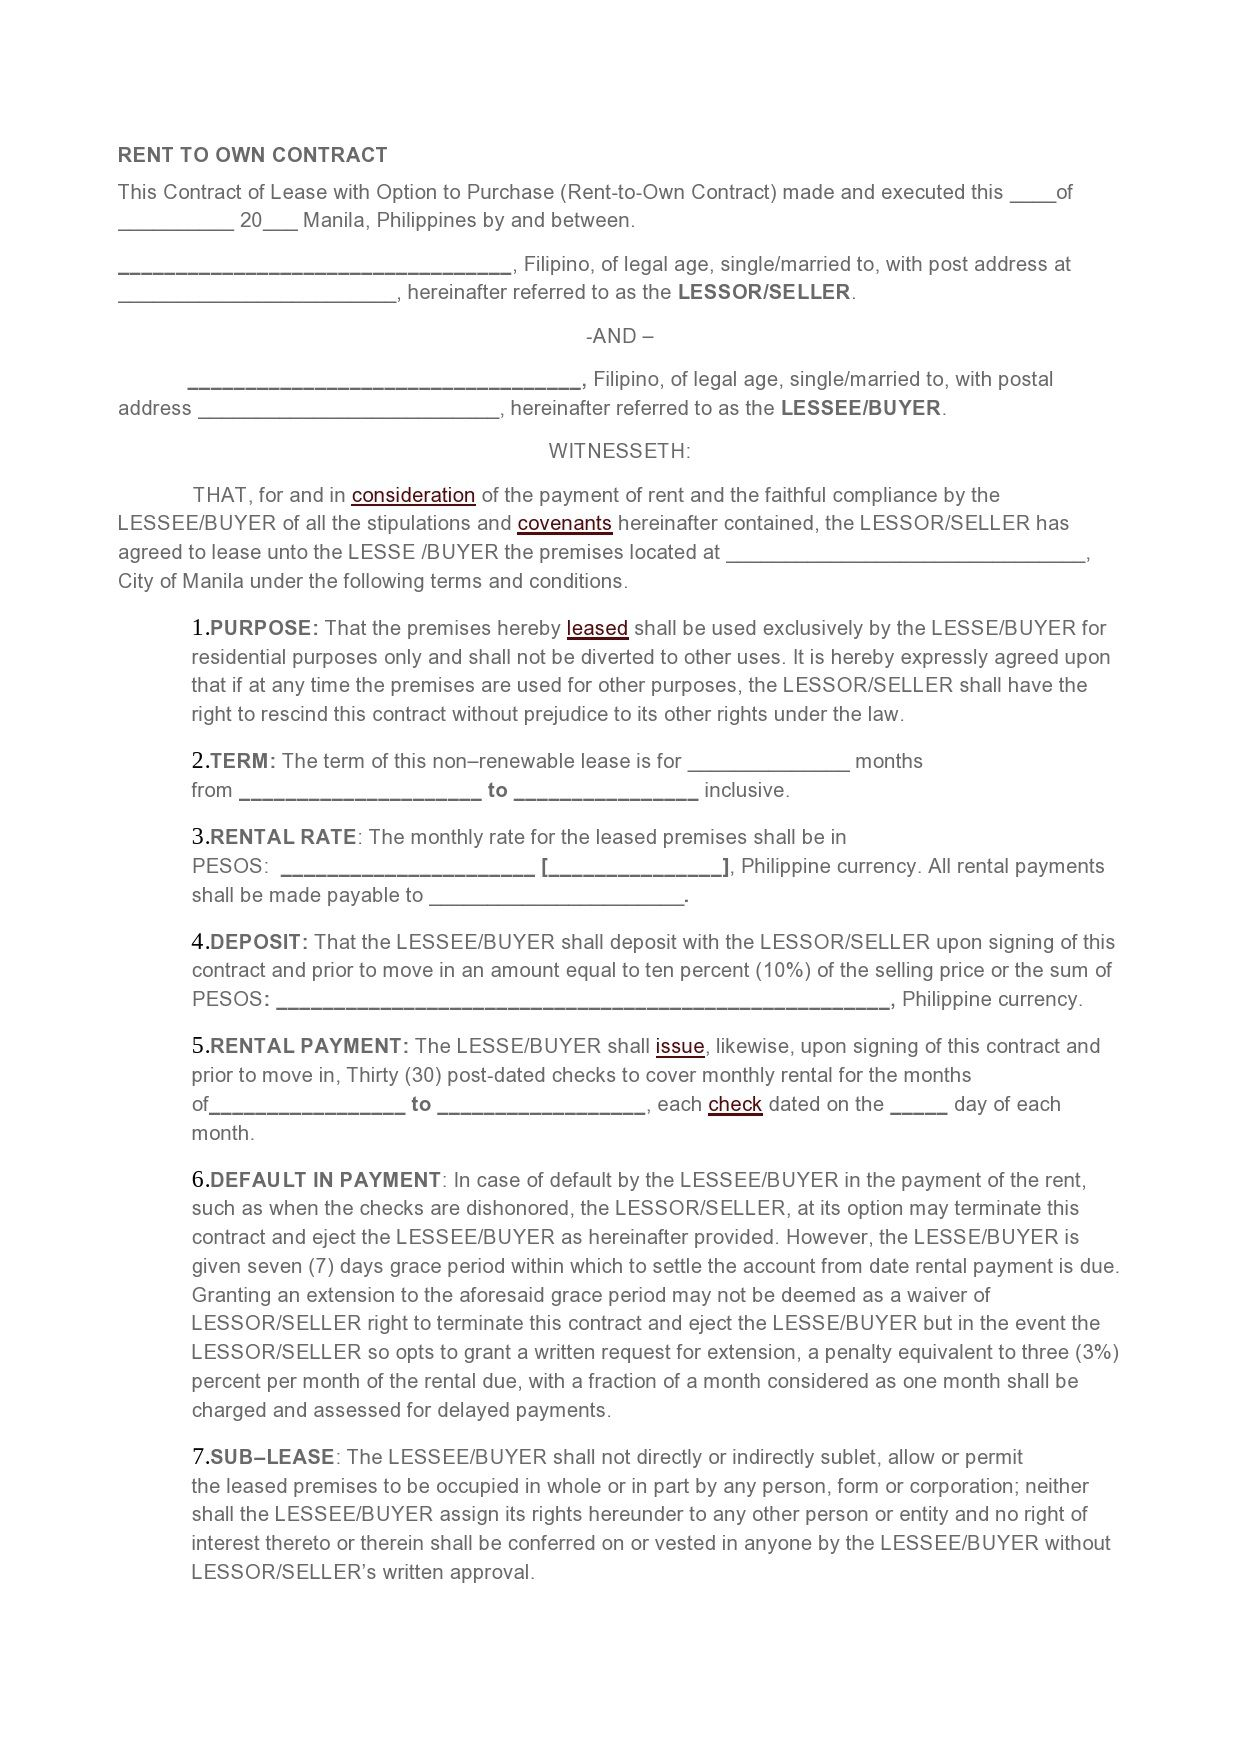 007 Dreaded Rent To Own Contract Template Philippine Picture  Philippines SampleFull